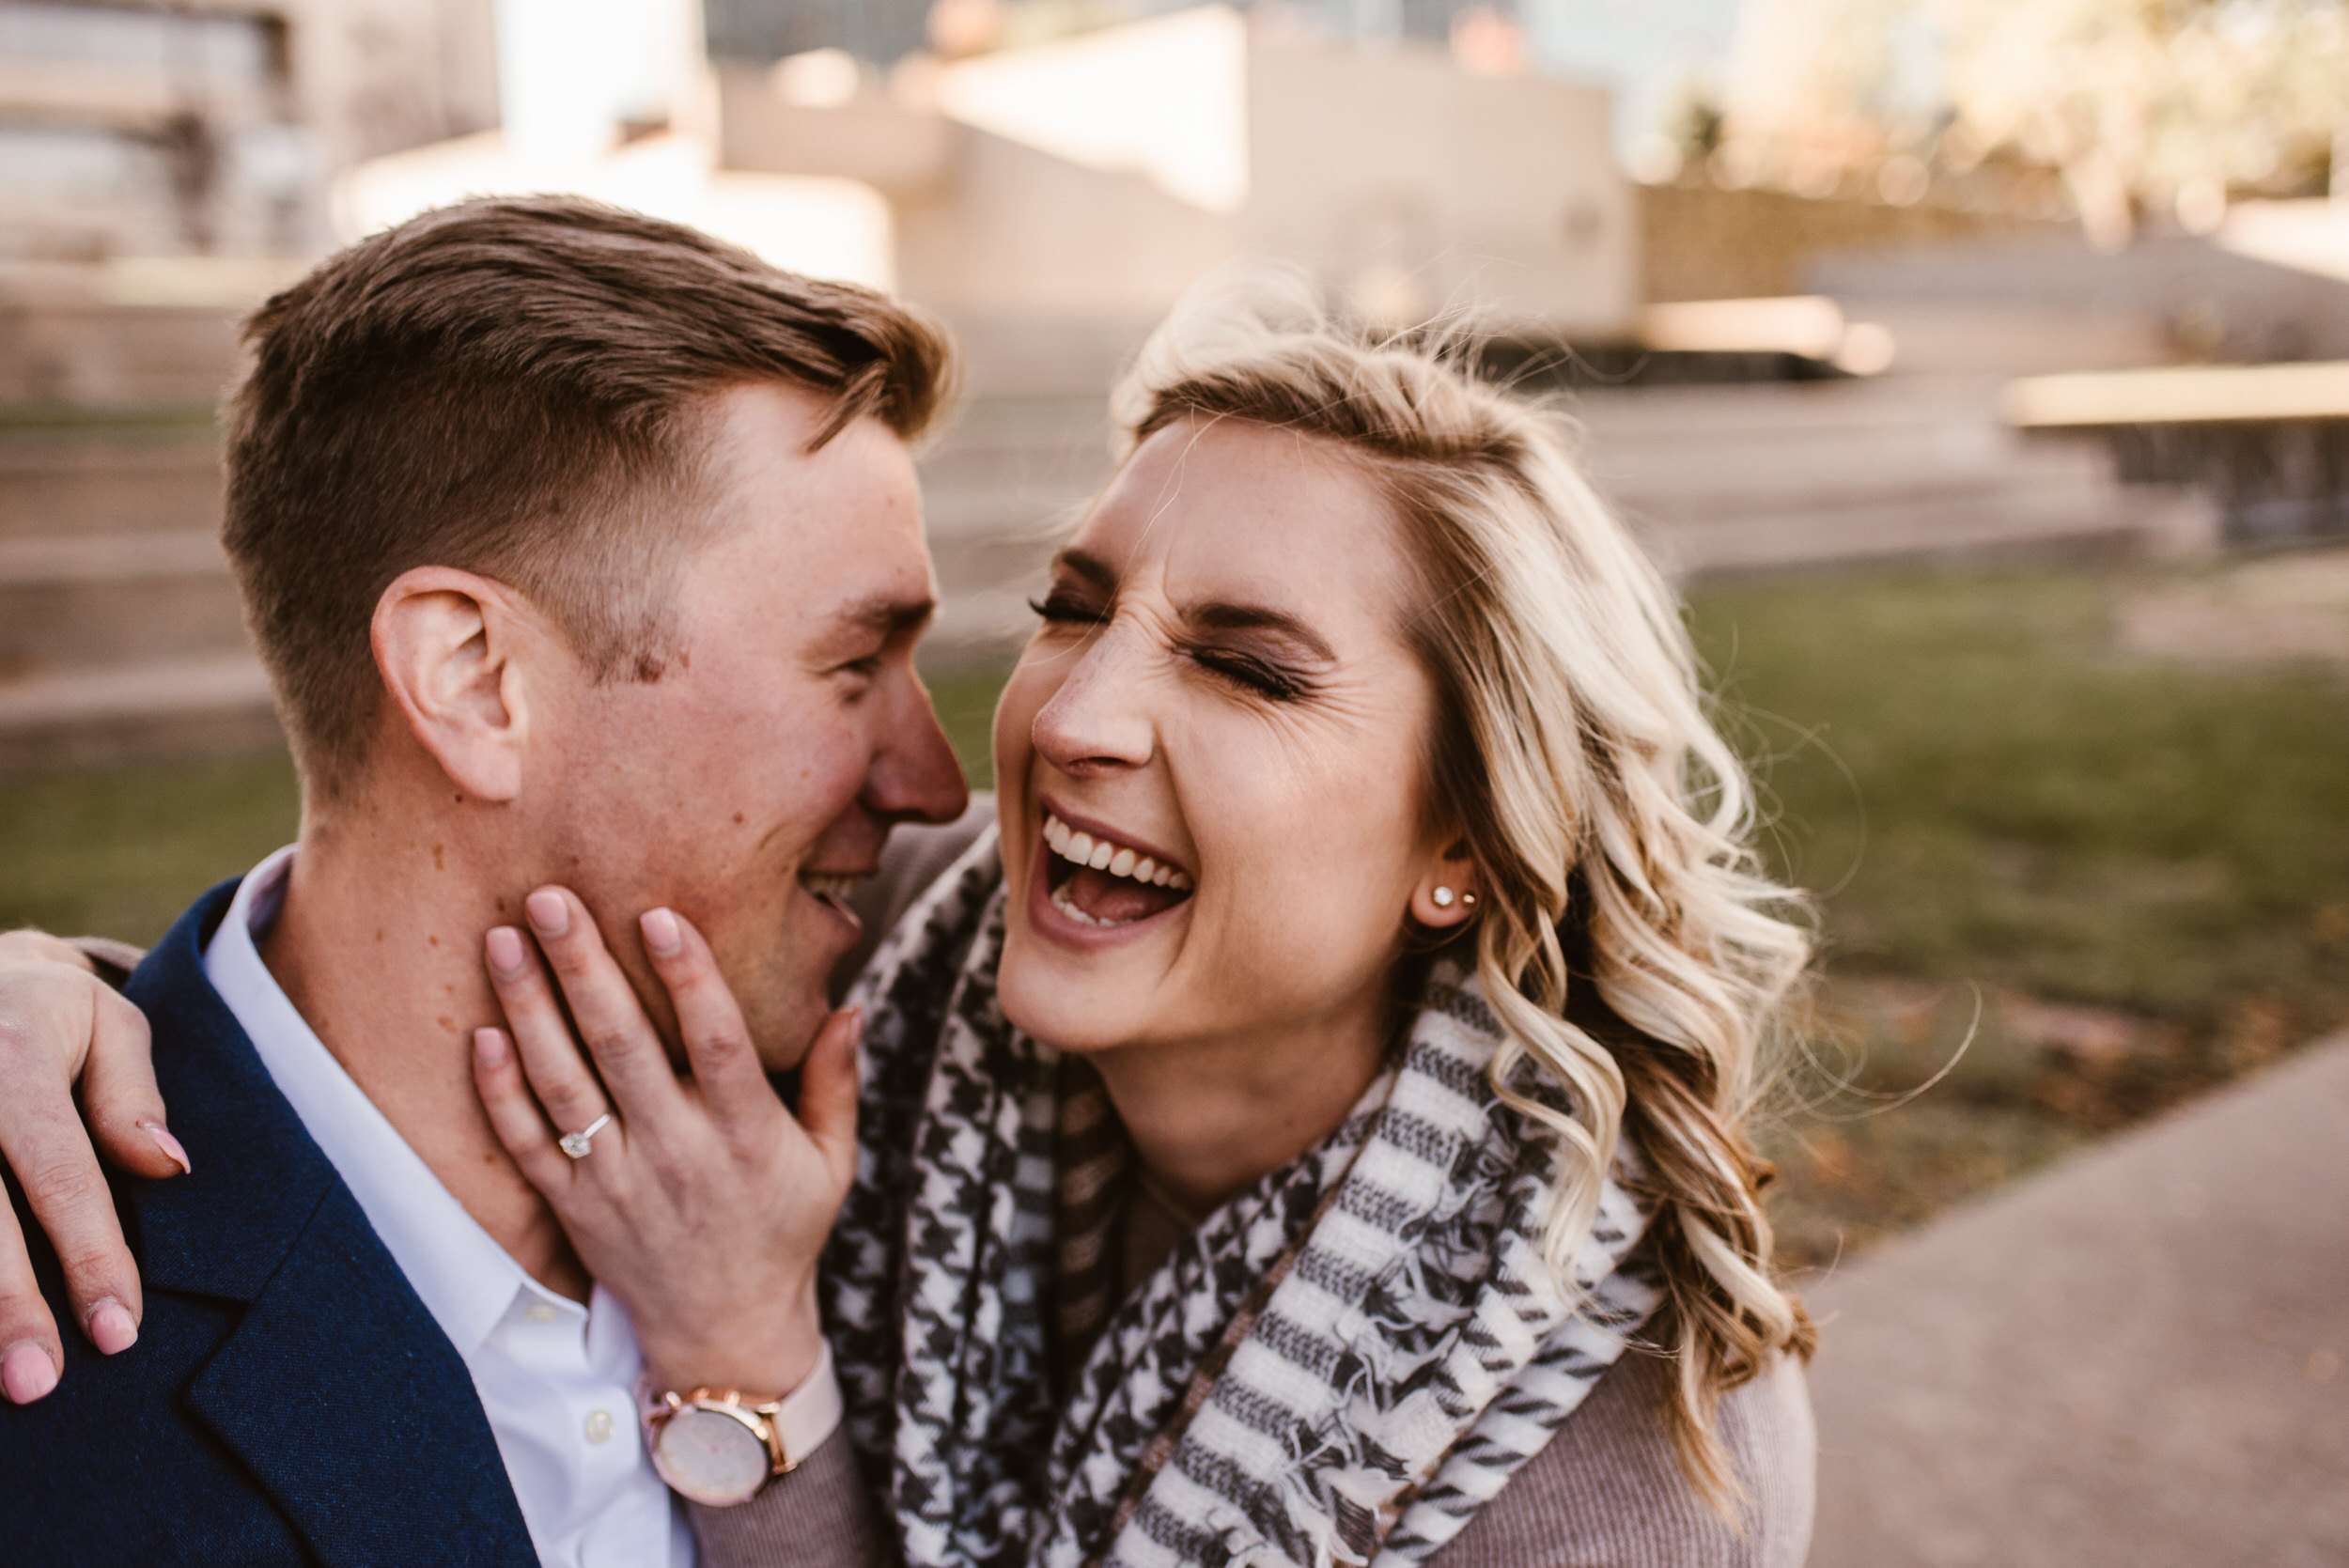 Gene Leahy Mall Omaha Engagement Session Kaylie Sirek Photography 04.jpg